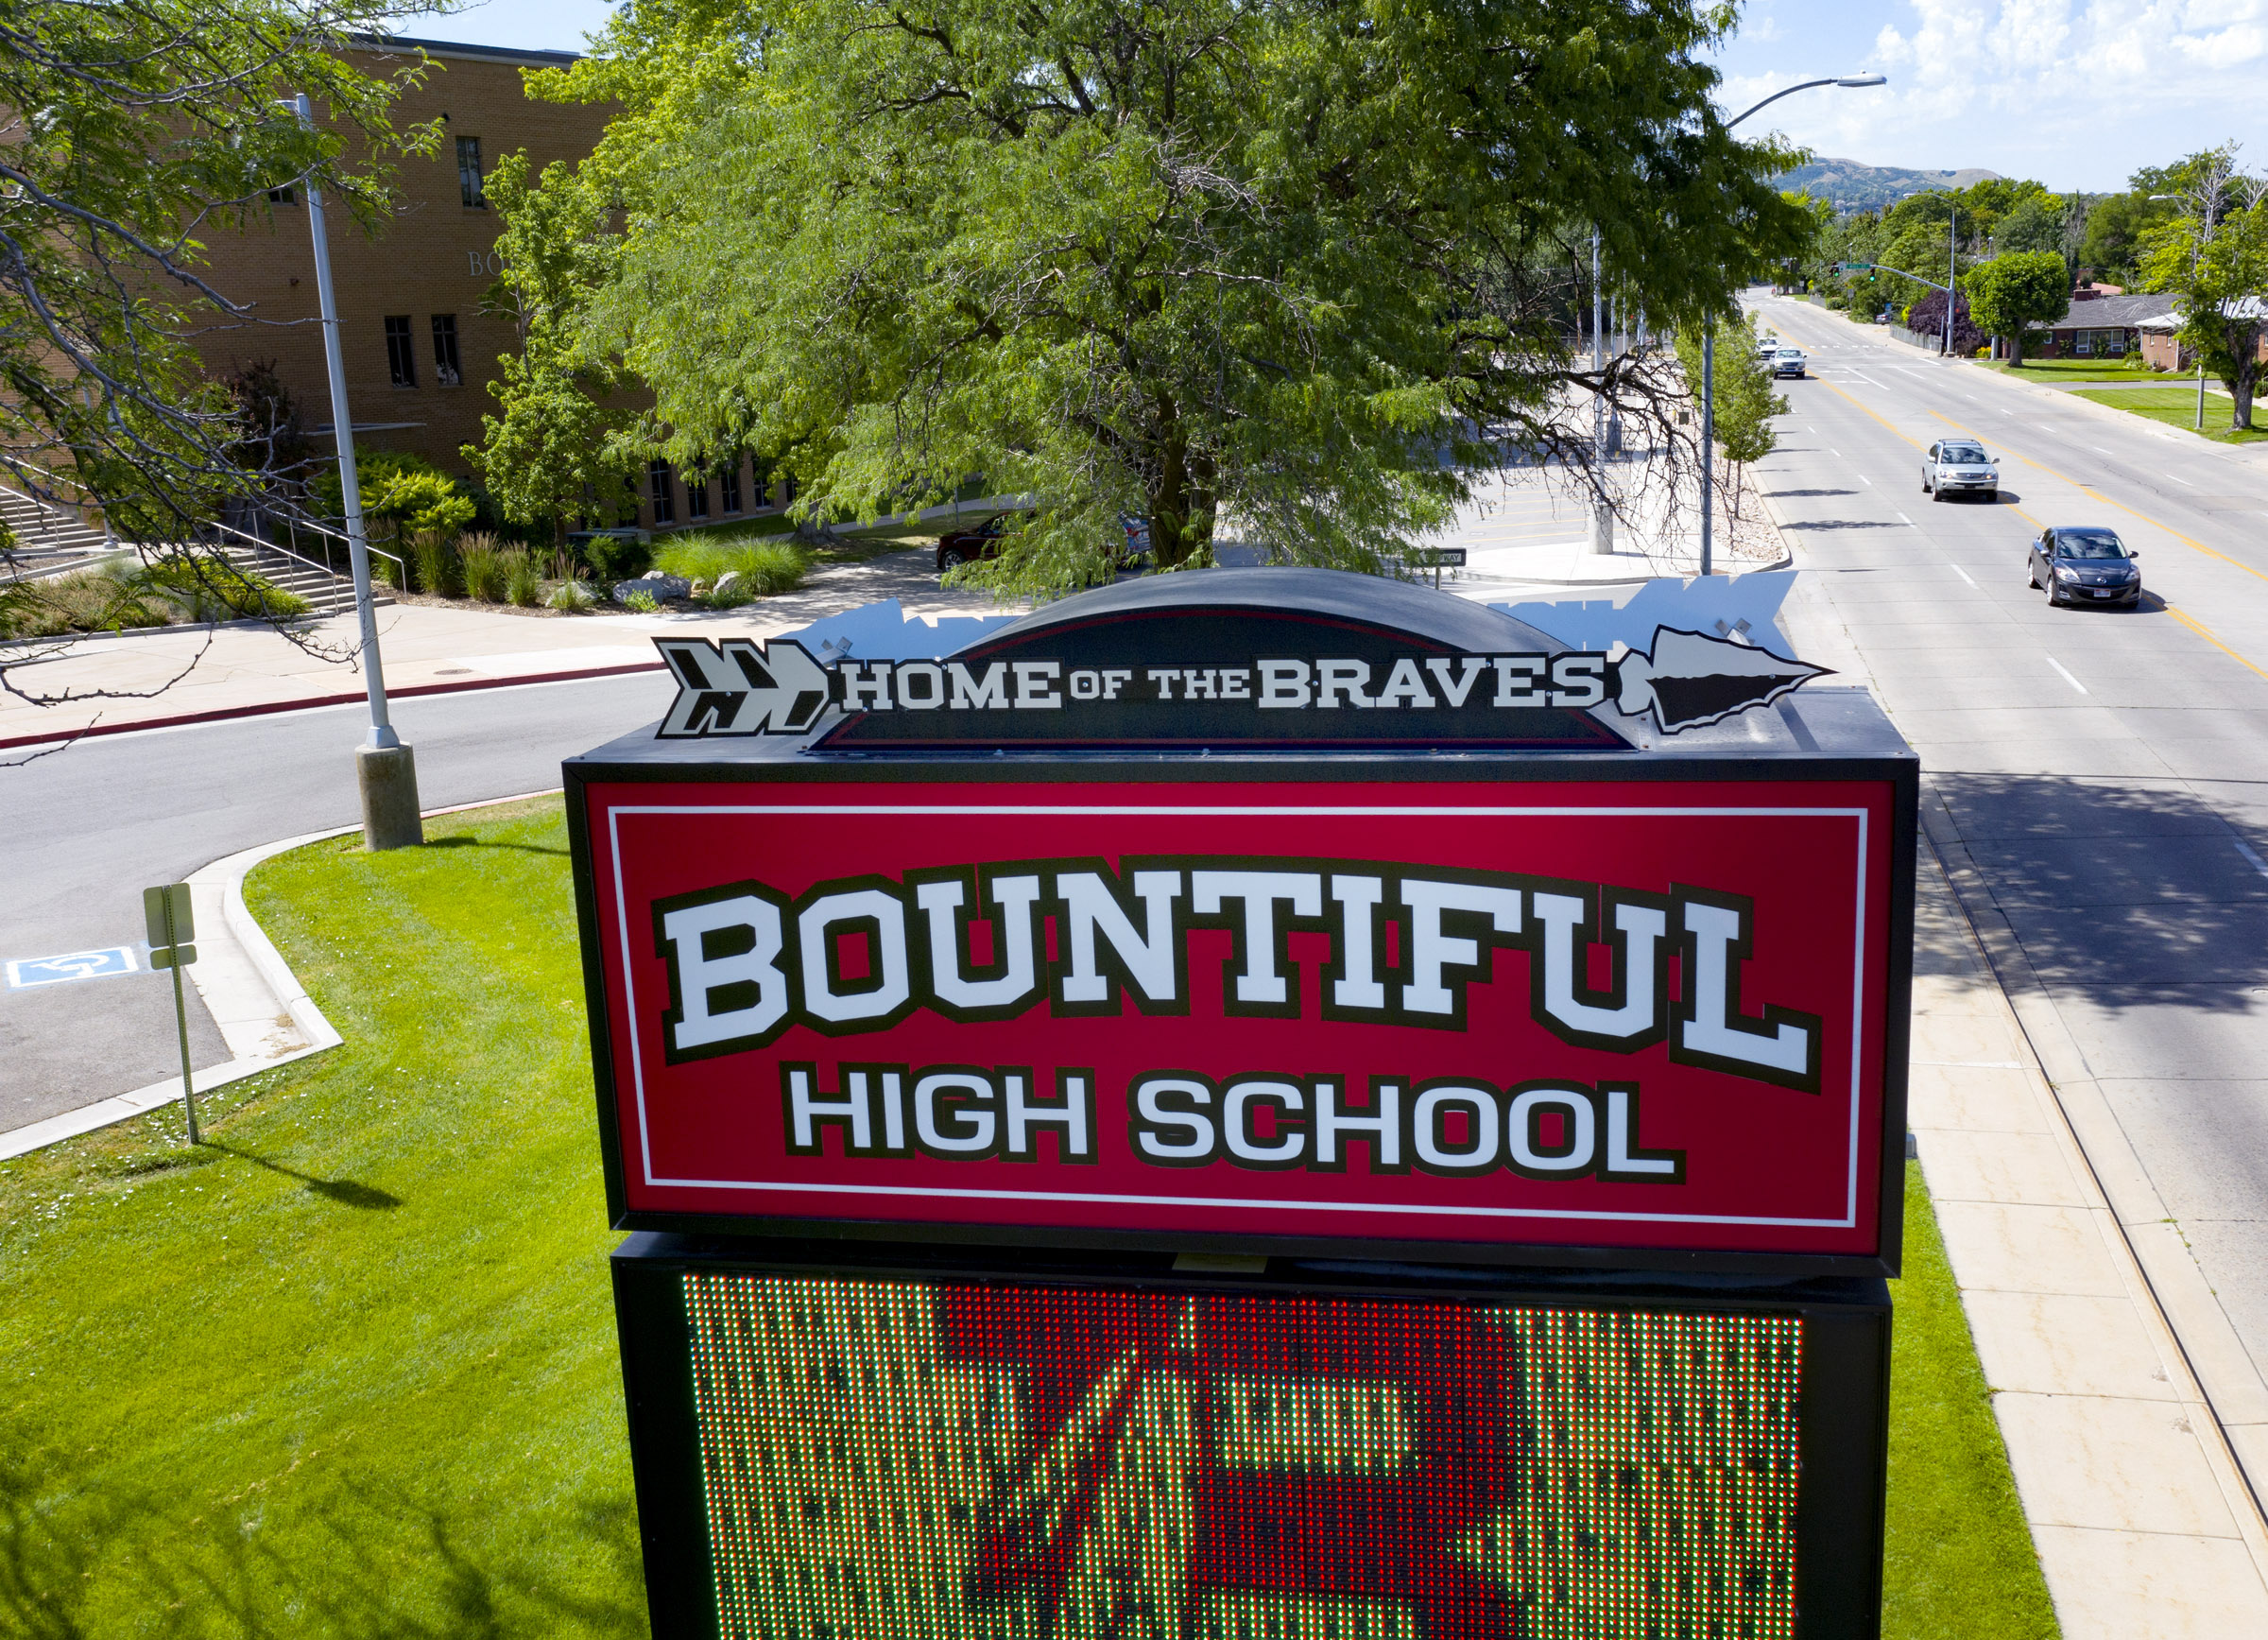 The marquee at Bountiful High School in Bountiful is pictured on Monday, July 13, 2020.